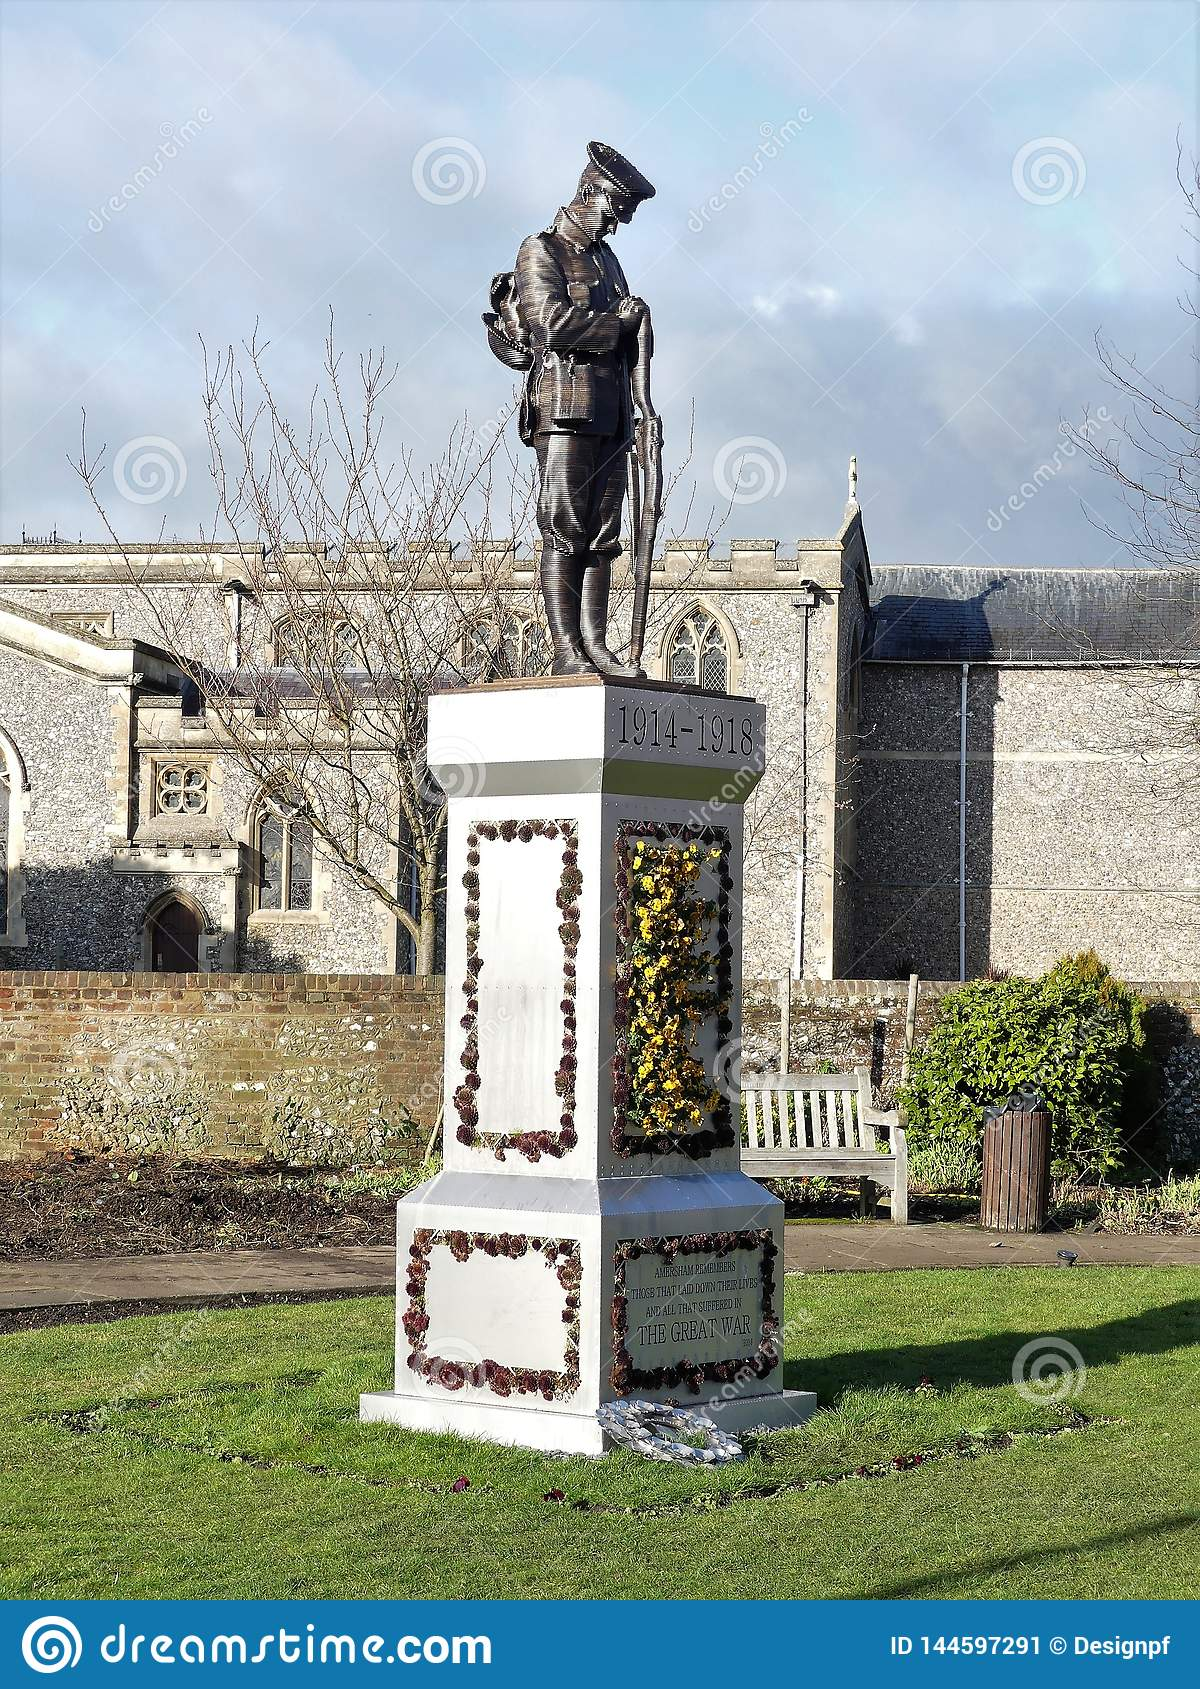 Statue of a lone soldier on a plinth in The Memorial Gardens in Old Amersham, Buckinghamshire, UK